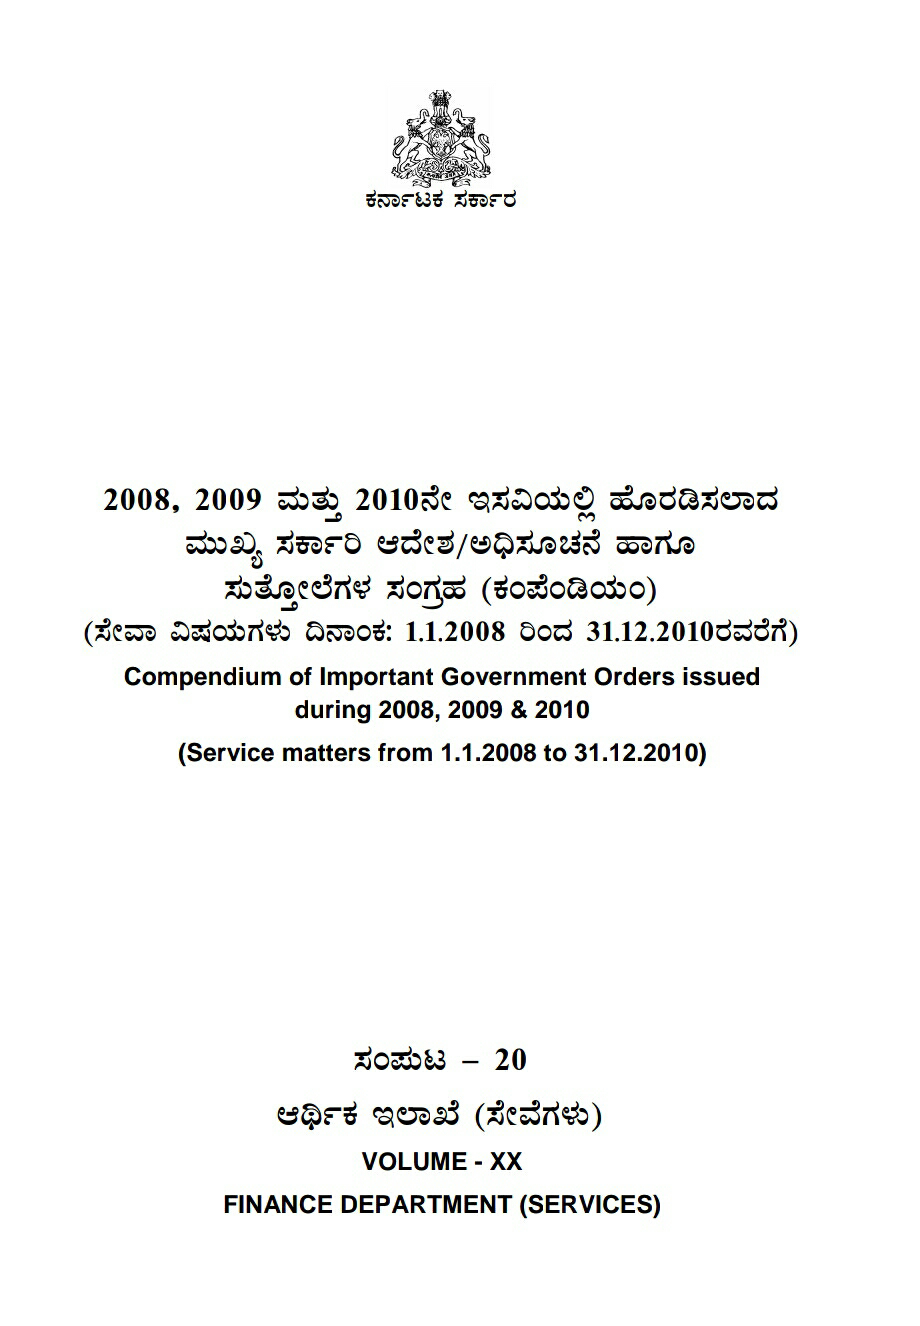 Collection of Government Orders, Notifications, and Circulars issued on 2008-2010